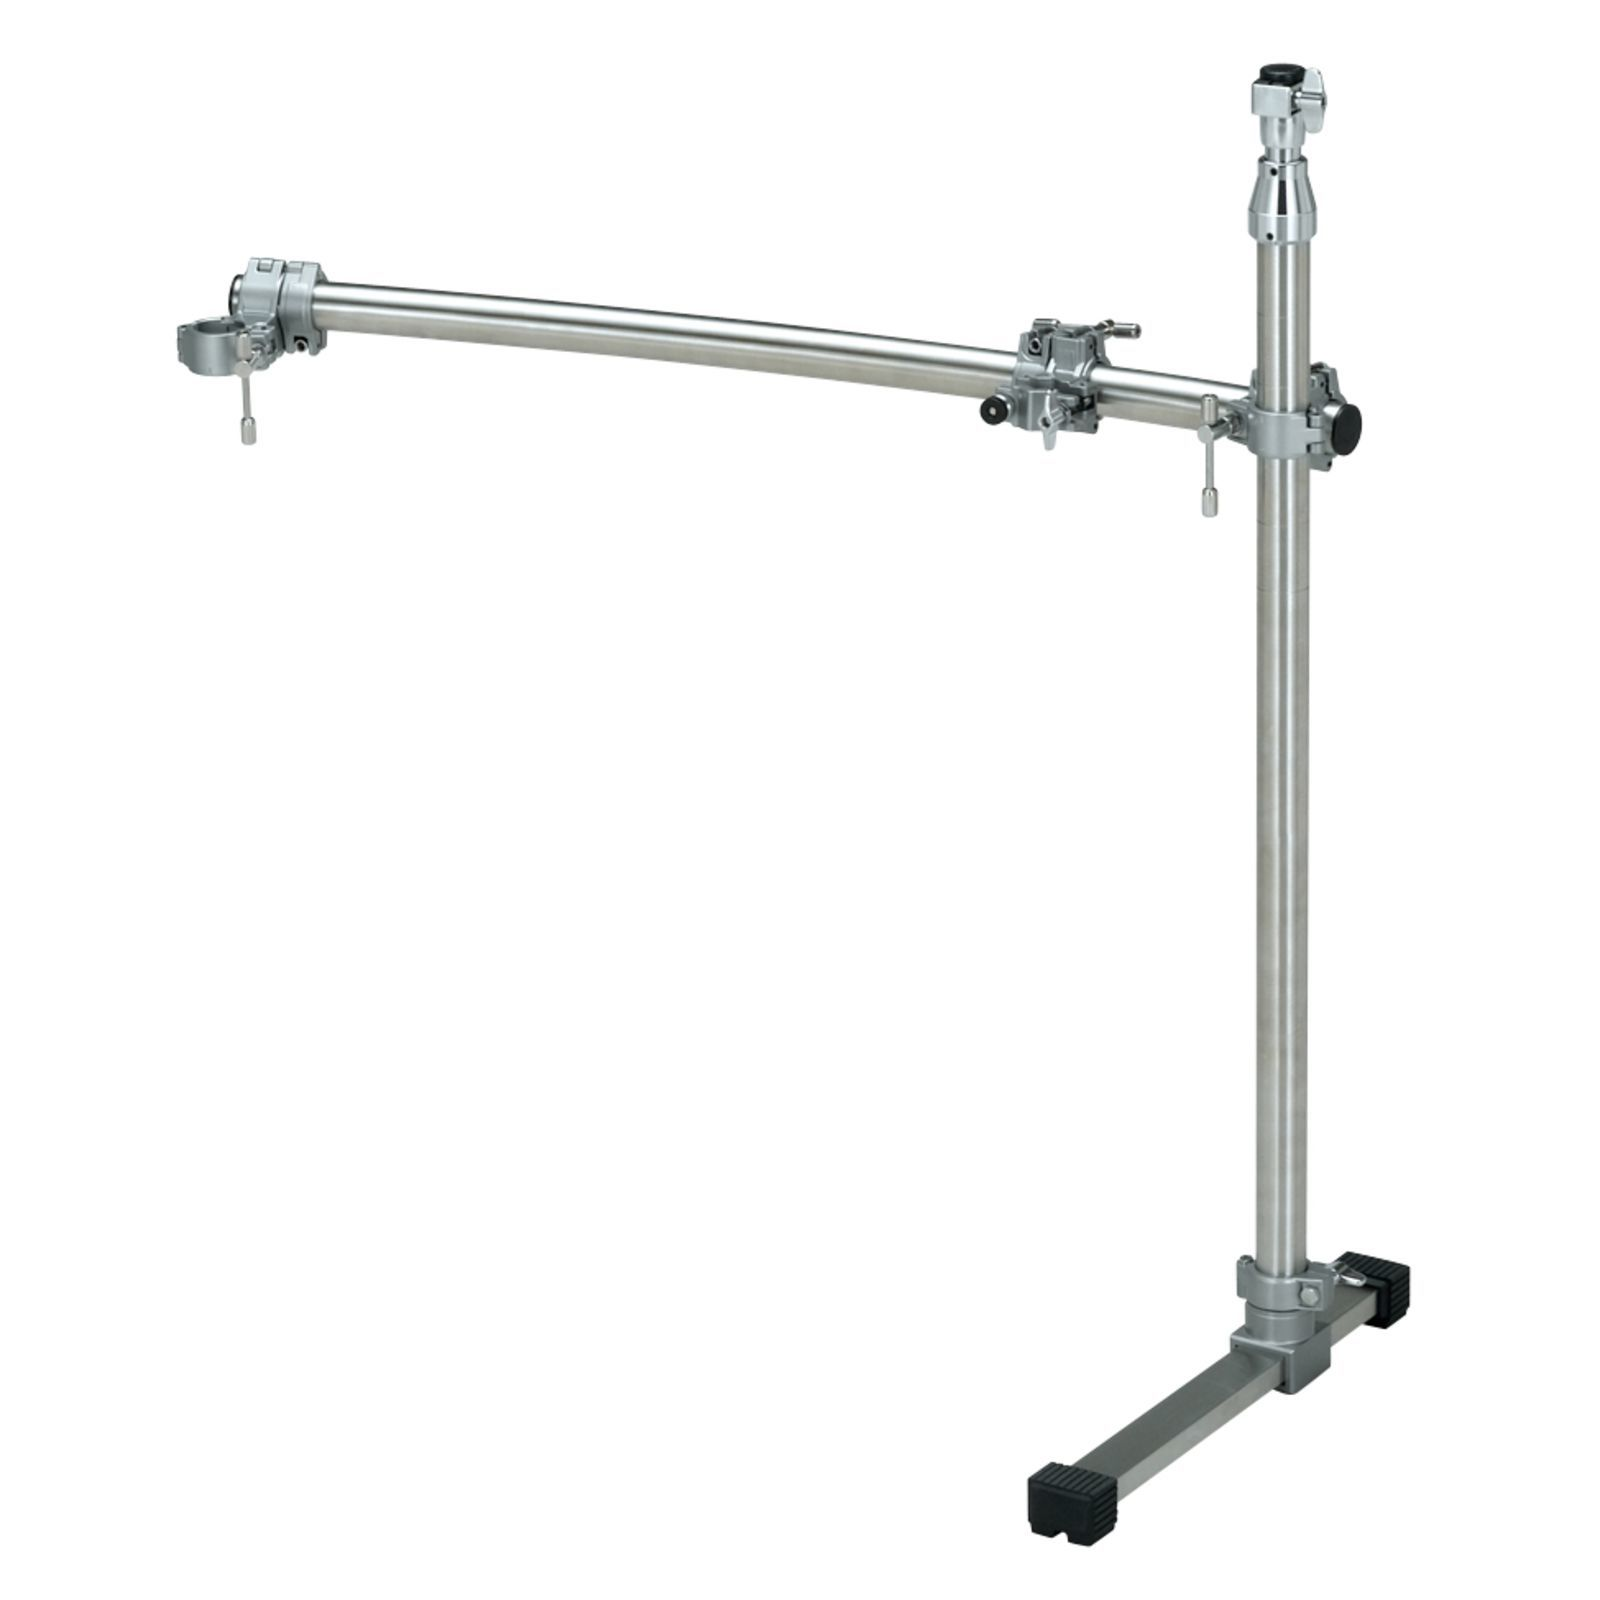 Tama DrumRack Extension, 90cm, Power Tower Produktbild